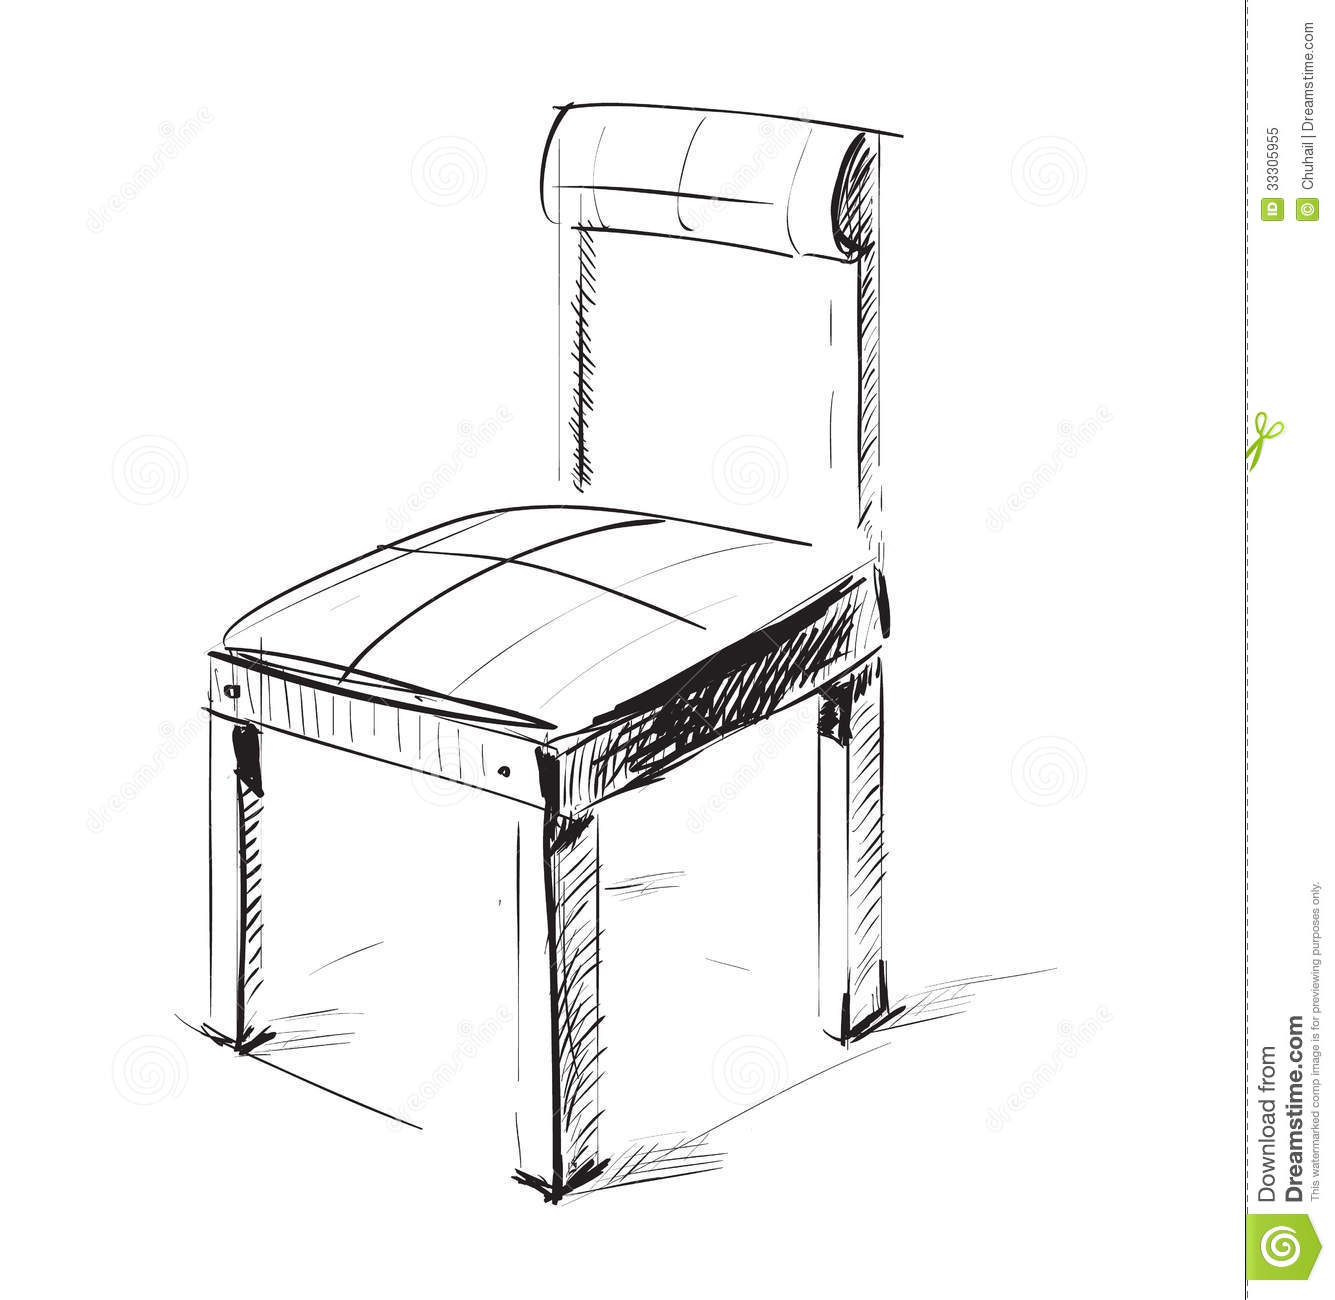 office chair illustration decorative covers for sale sketch icon stock vector image of white simple